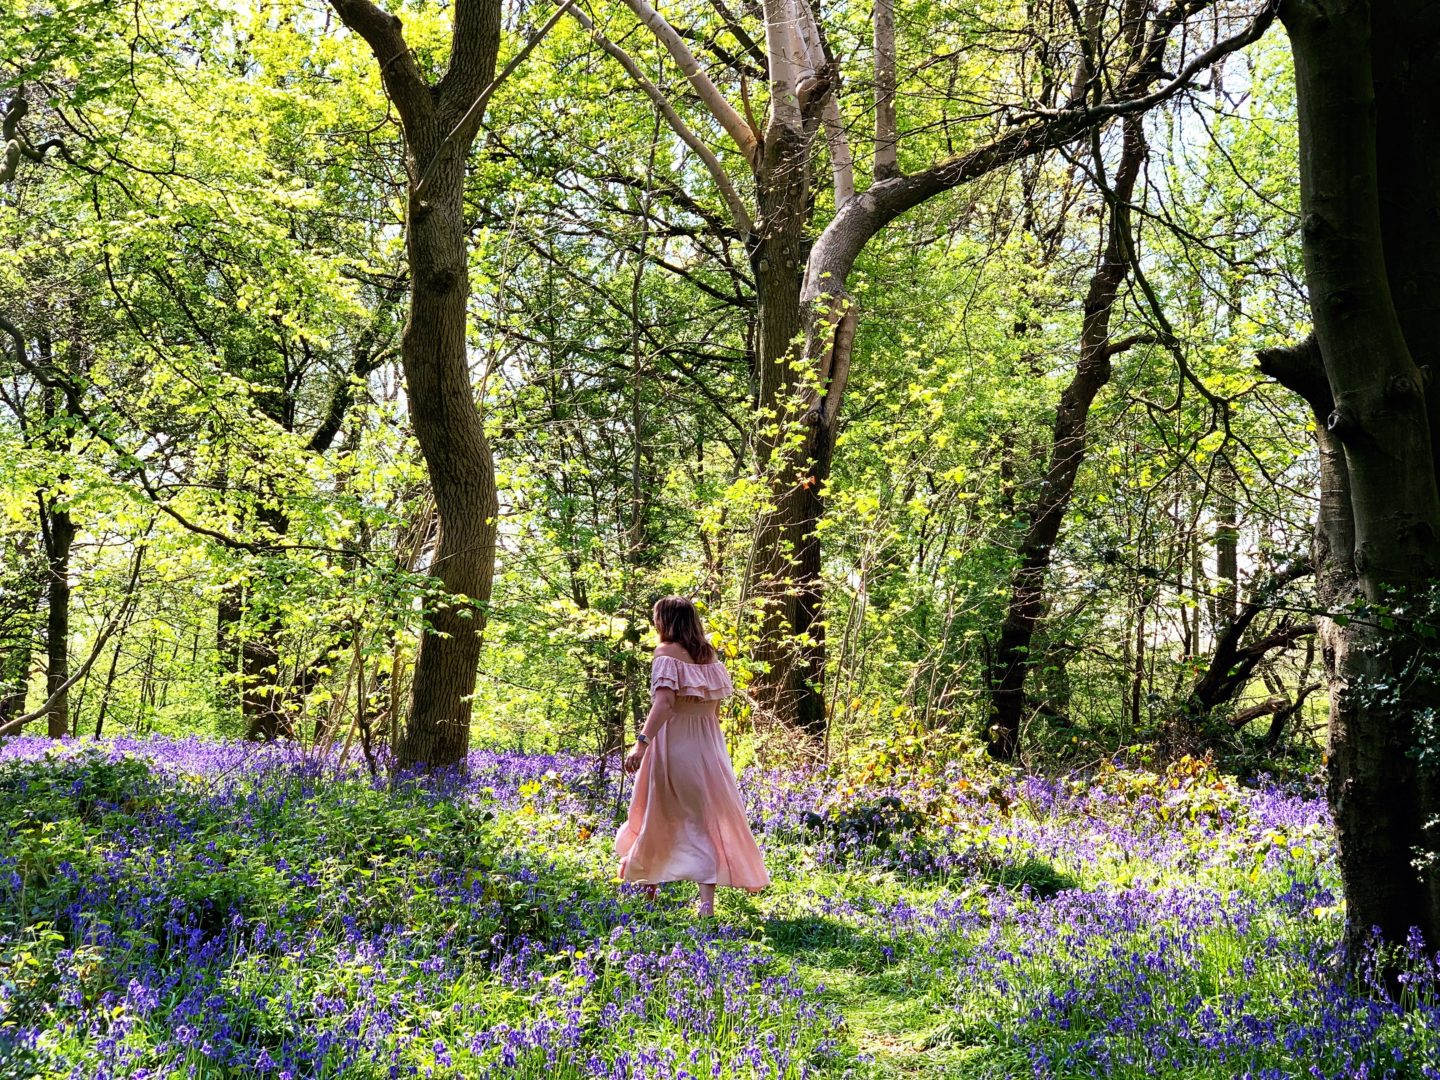 The magic of Bluebell Woods